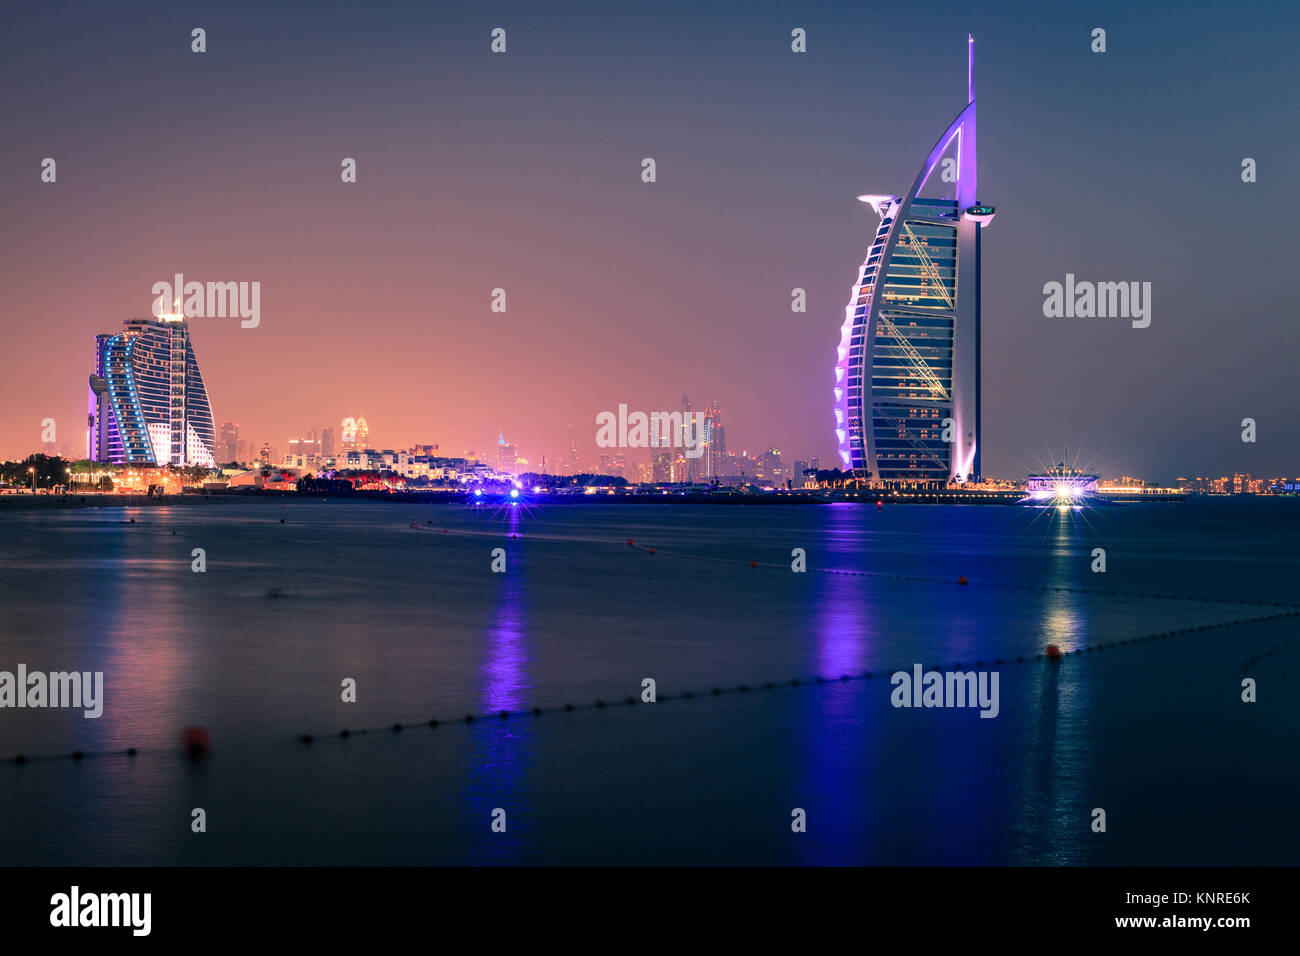 Dubai, UAE, June 7, 2016: view of world's famous Burj Al Arab and Jumeirah Beach hotels at night - Stock Image